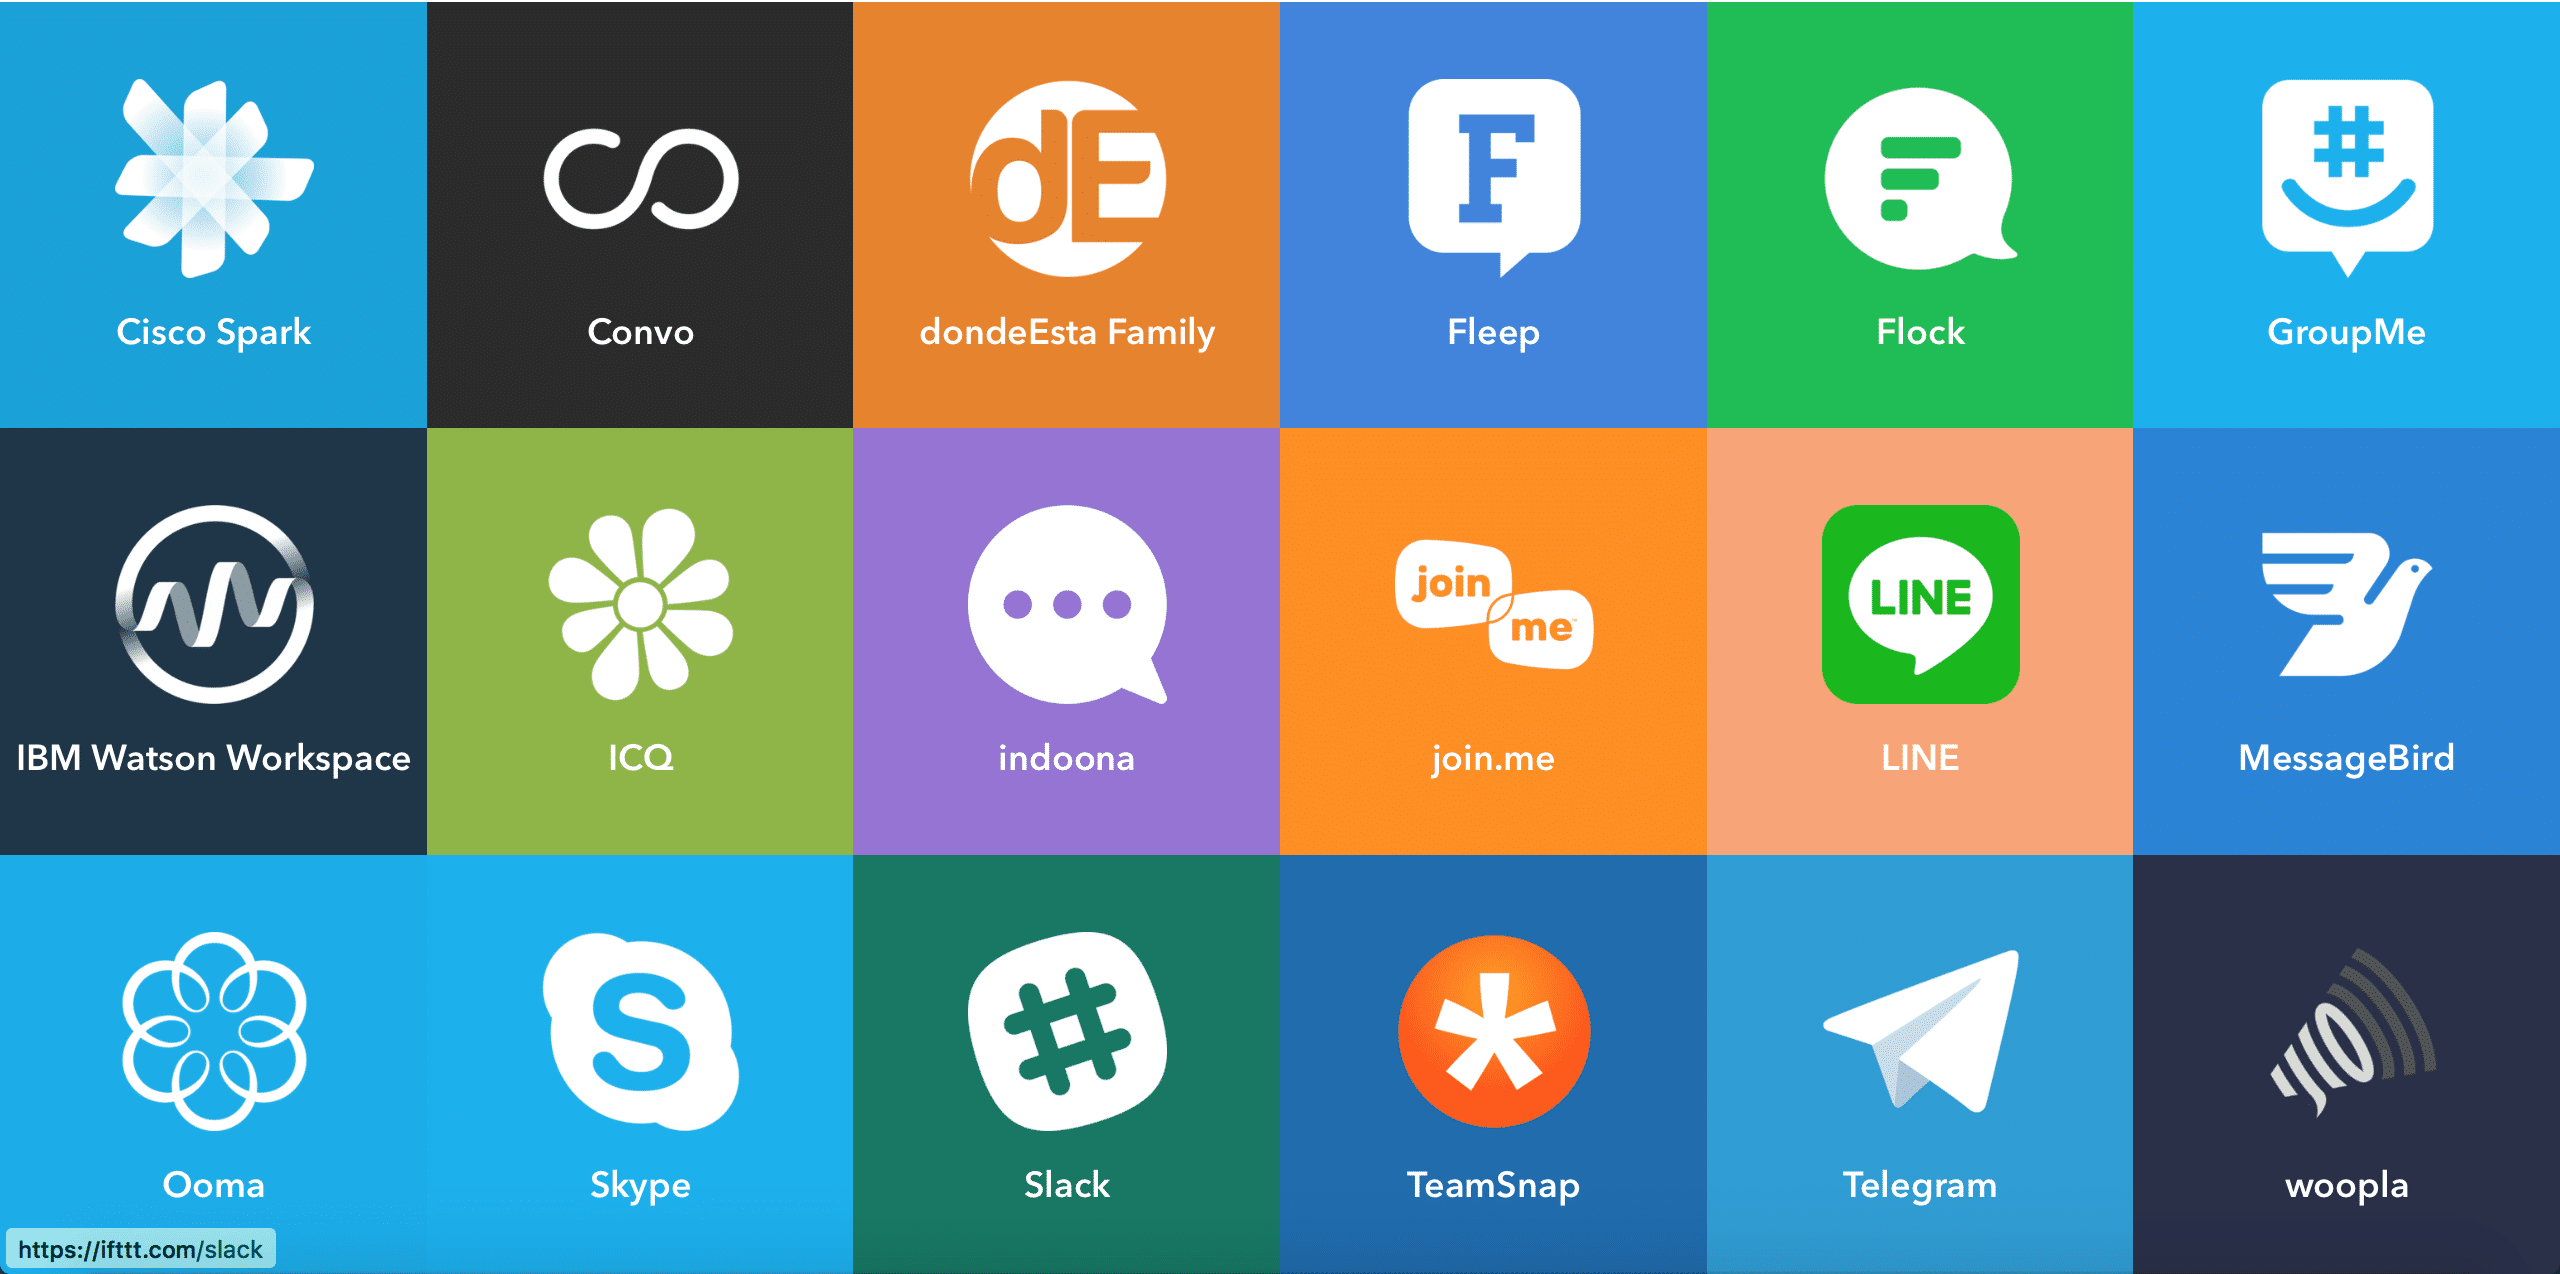 20 IFTTT recipes that will make you more productive